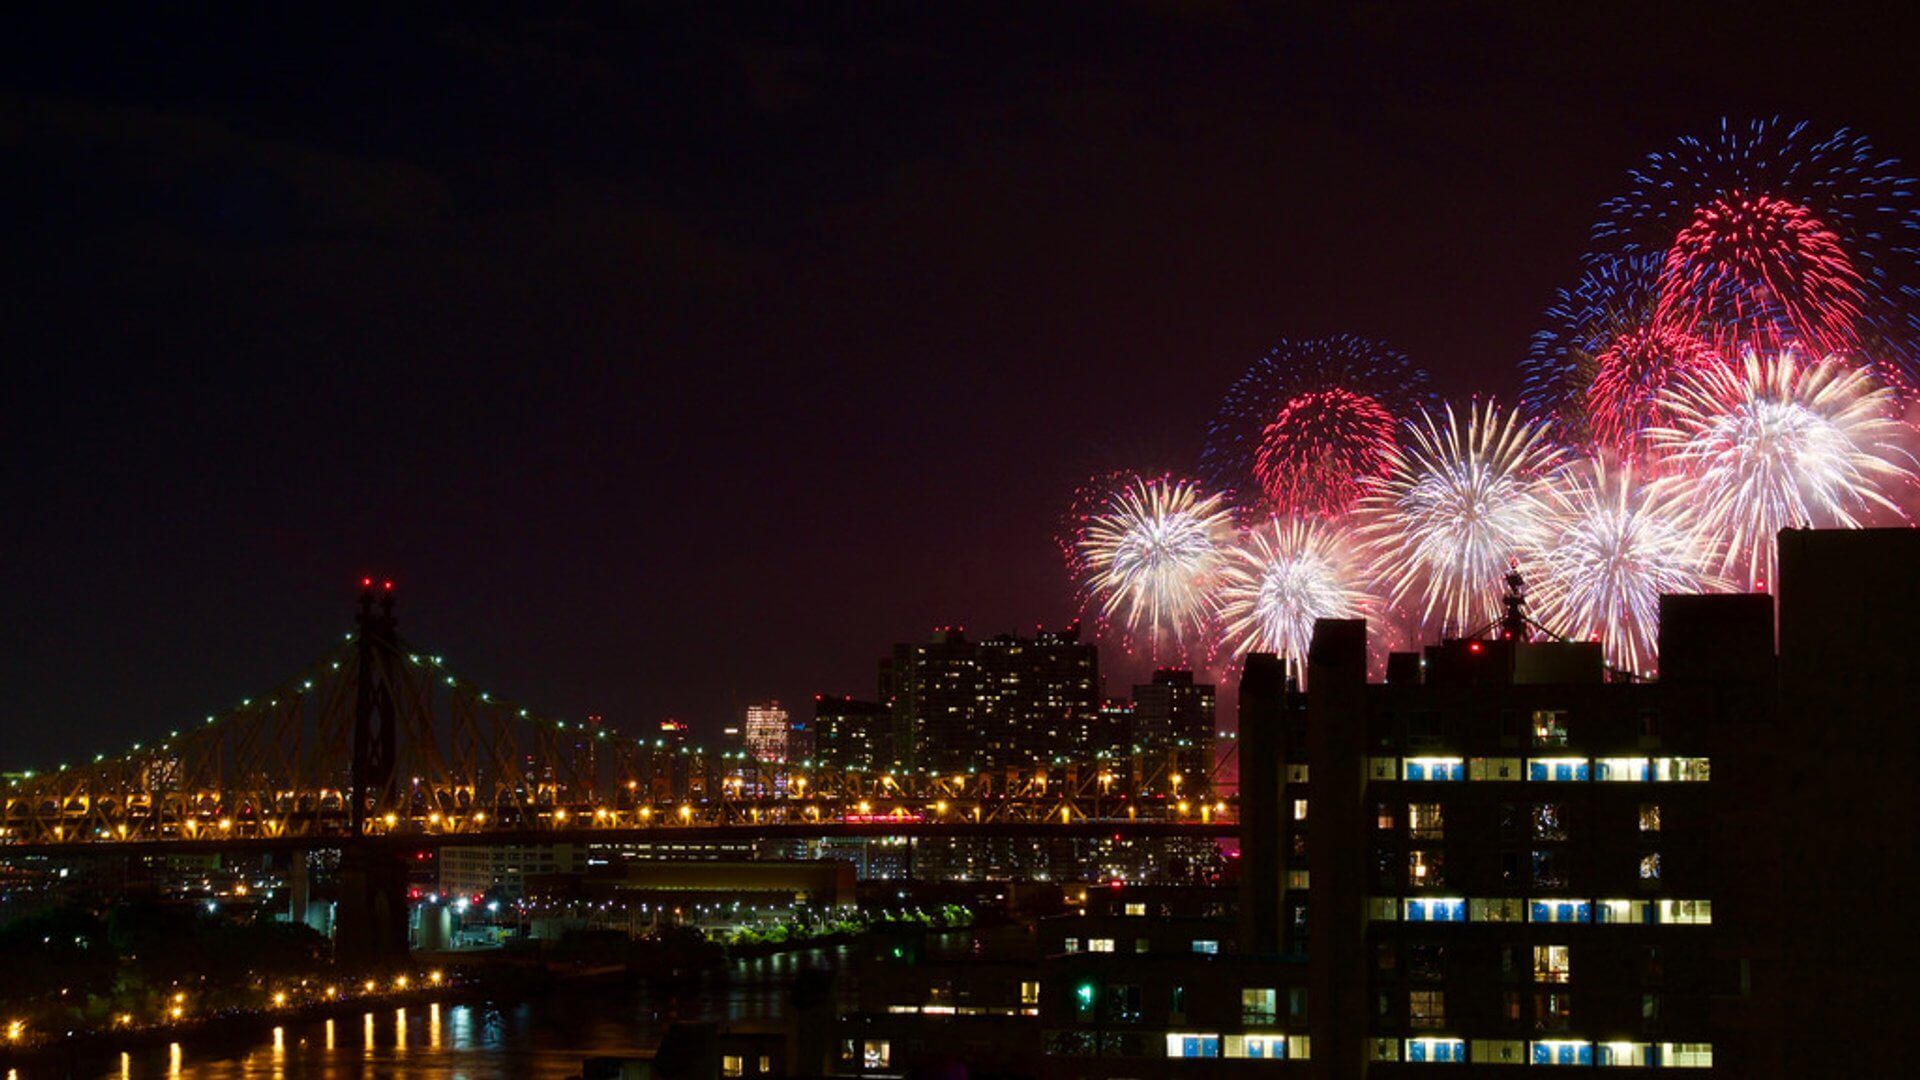 nyc fireworks on 4th july